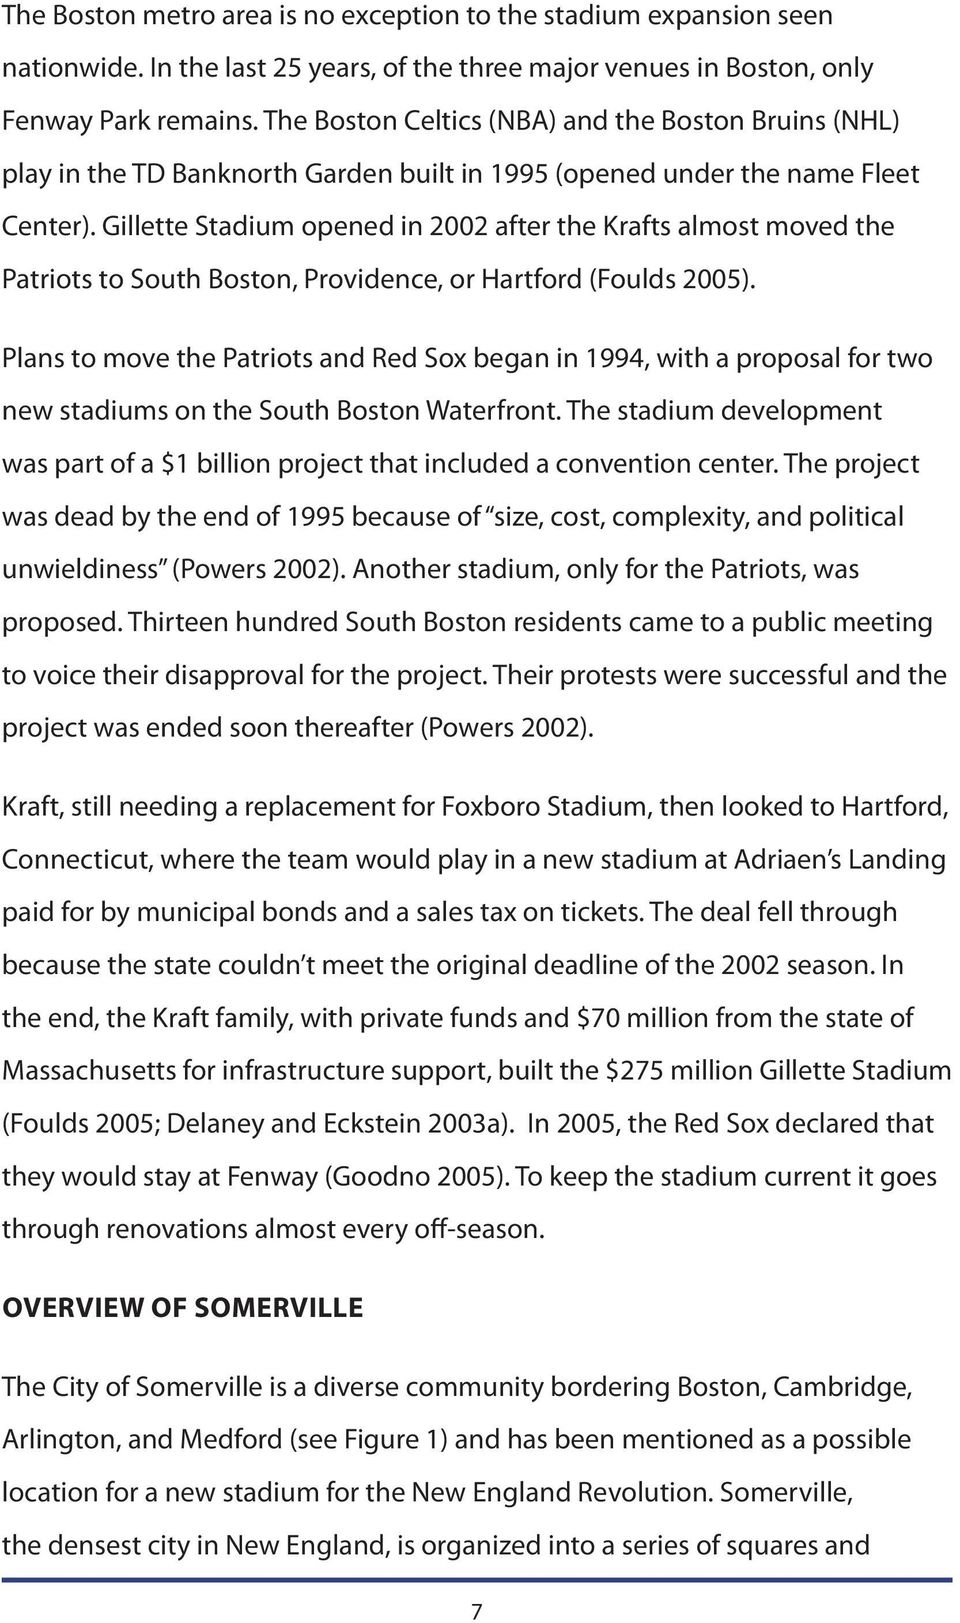 Gillette Stadium opened in 2002 after the Krafts almost moved the Patriots to South Boston, Providence, or Hartford (Foulds 2005).